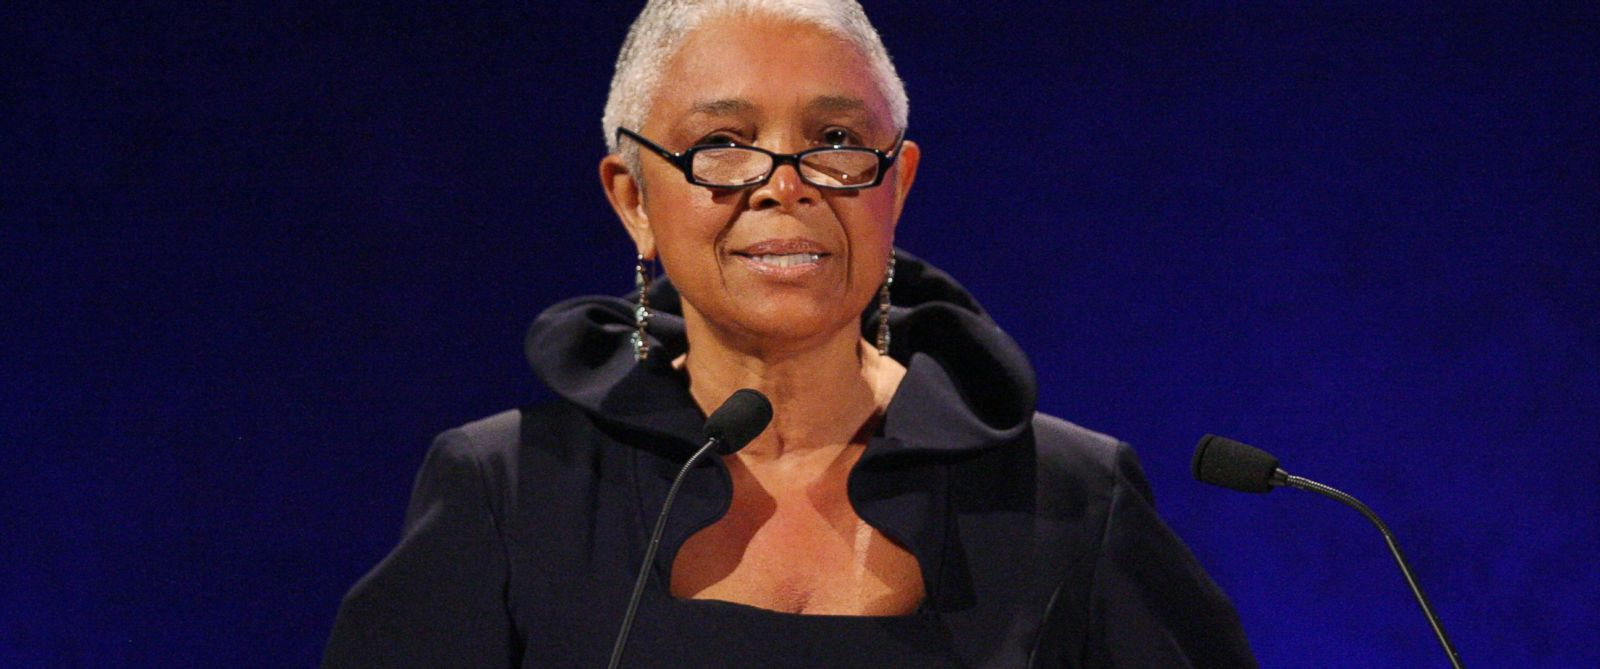 PHOTO:In this file photo, Camille Cosby speaks on stage at the 35th Anniversary of the Jackie Robinson Foundation, March 3, 2008, in New York.